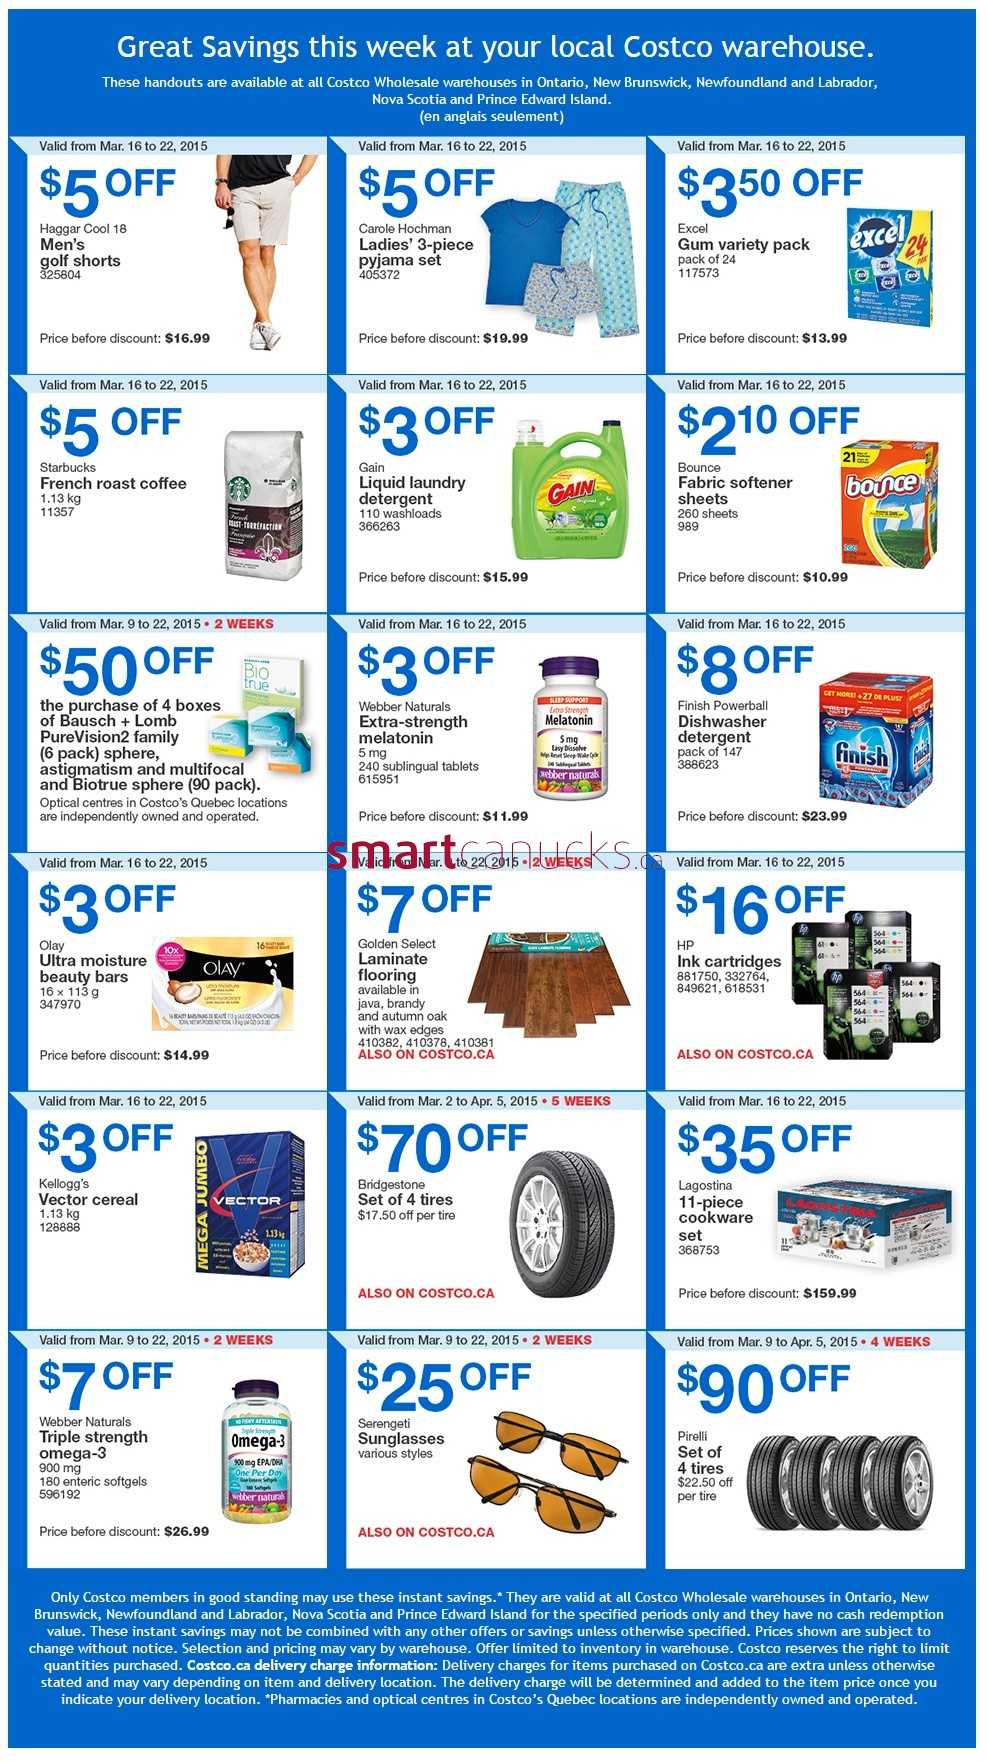 Costco weekly savings on amp atlantic canada march 16 to 22